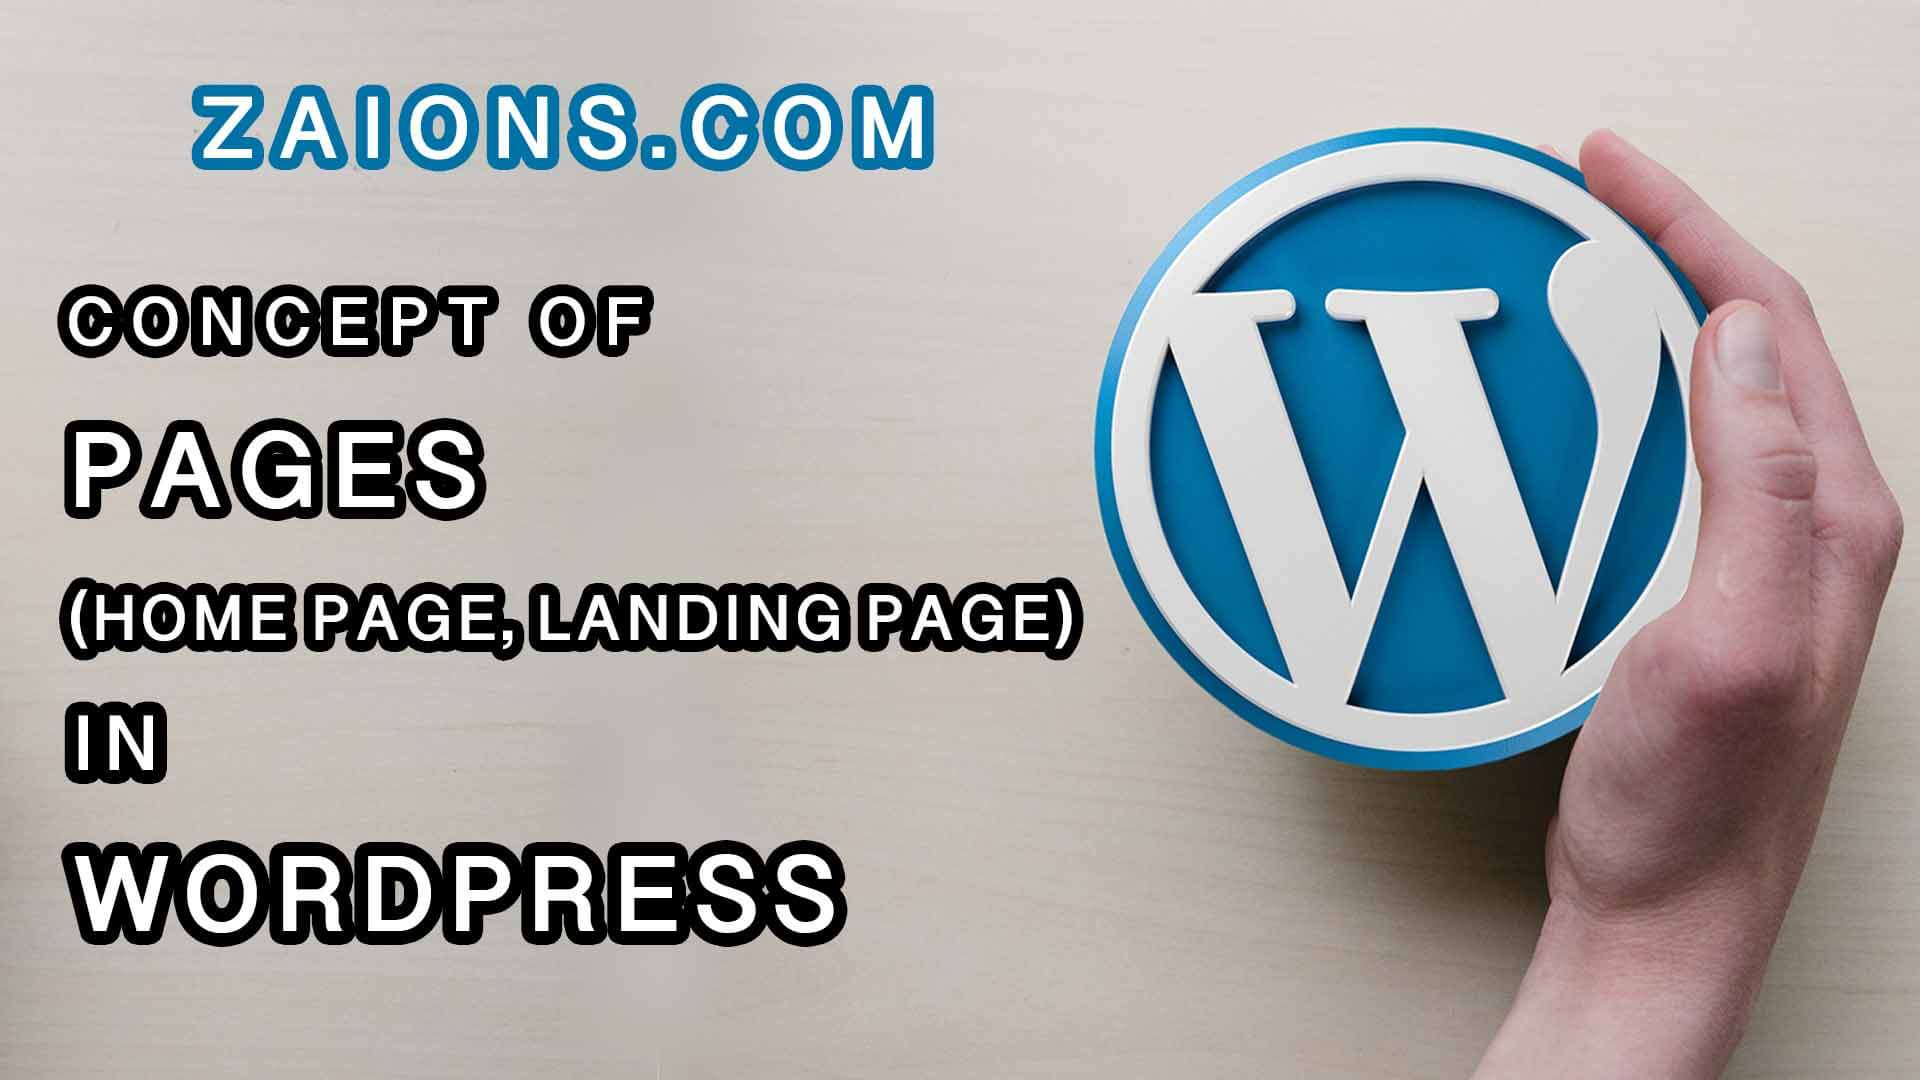 how-to-make-pages-in-wordpress-zaions.com